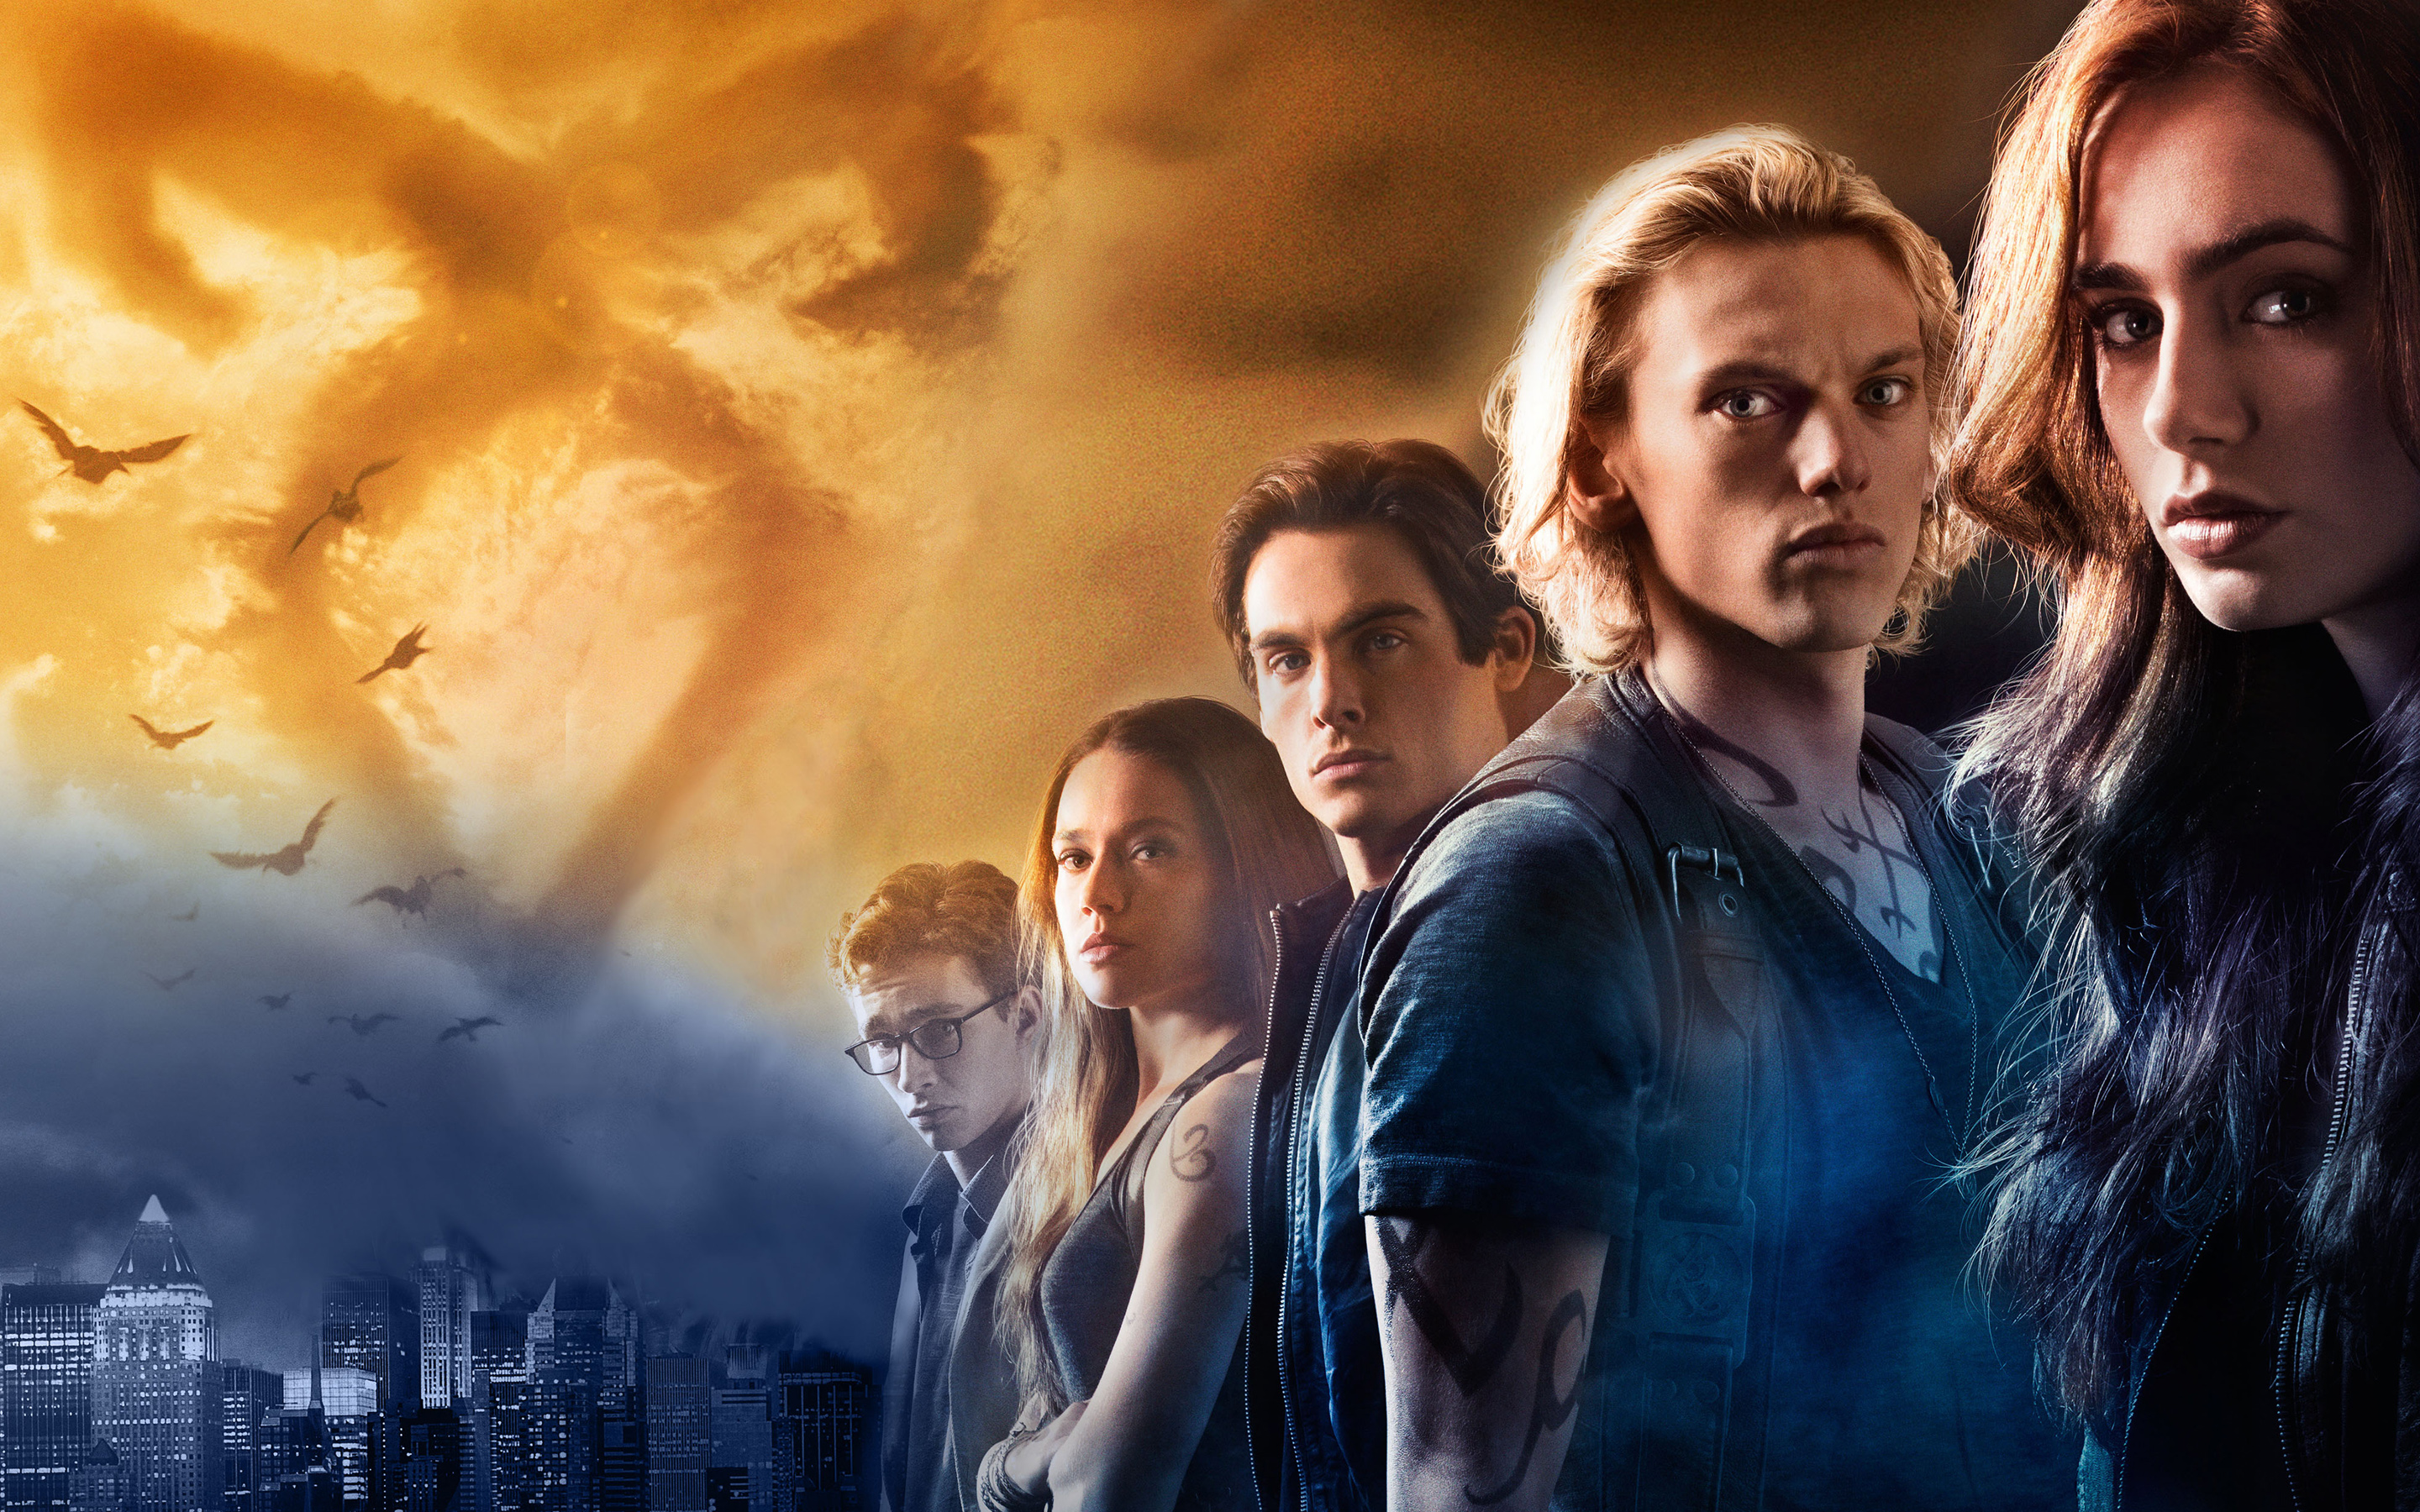 The Mortal Instruments City Of Bones Cover - The Mortal Instruments City Of Bones Cover